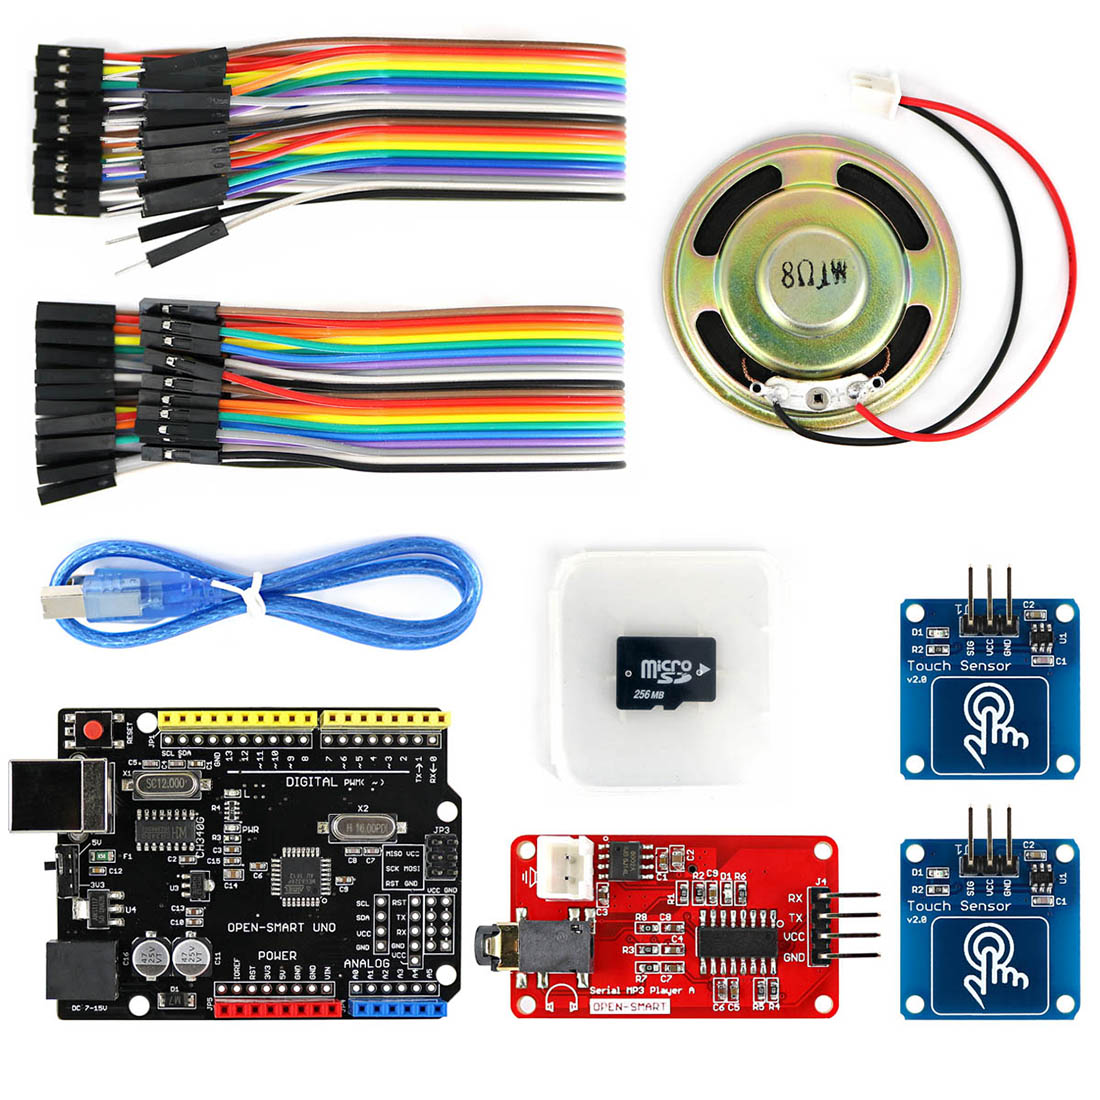 MP3 Player Kit With UNO R3 Board Micro SD Card Touch Sensor Module For Arduino Programmable Toys​